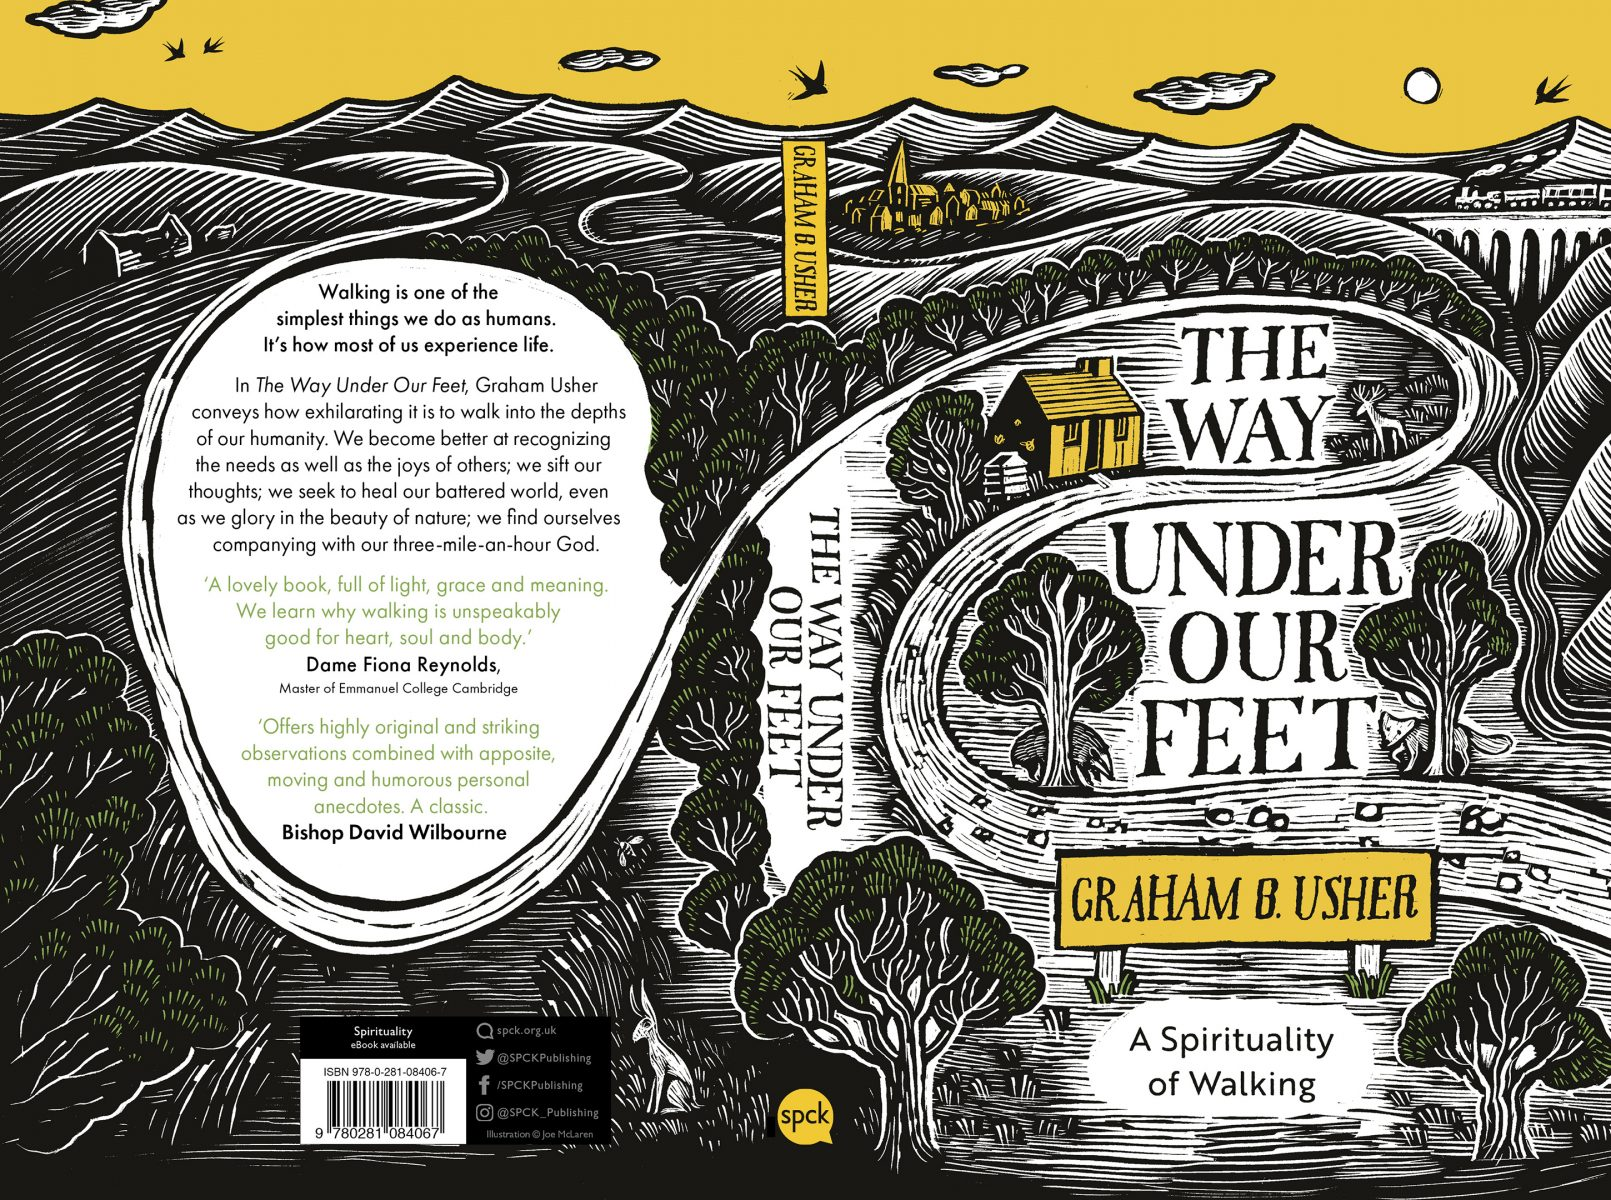 The Way Under Our Feet Full Book Cover Artwork